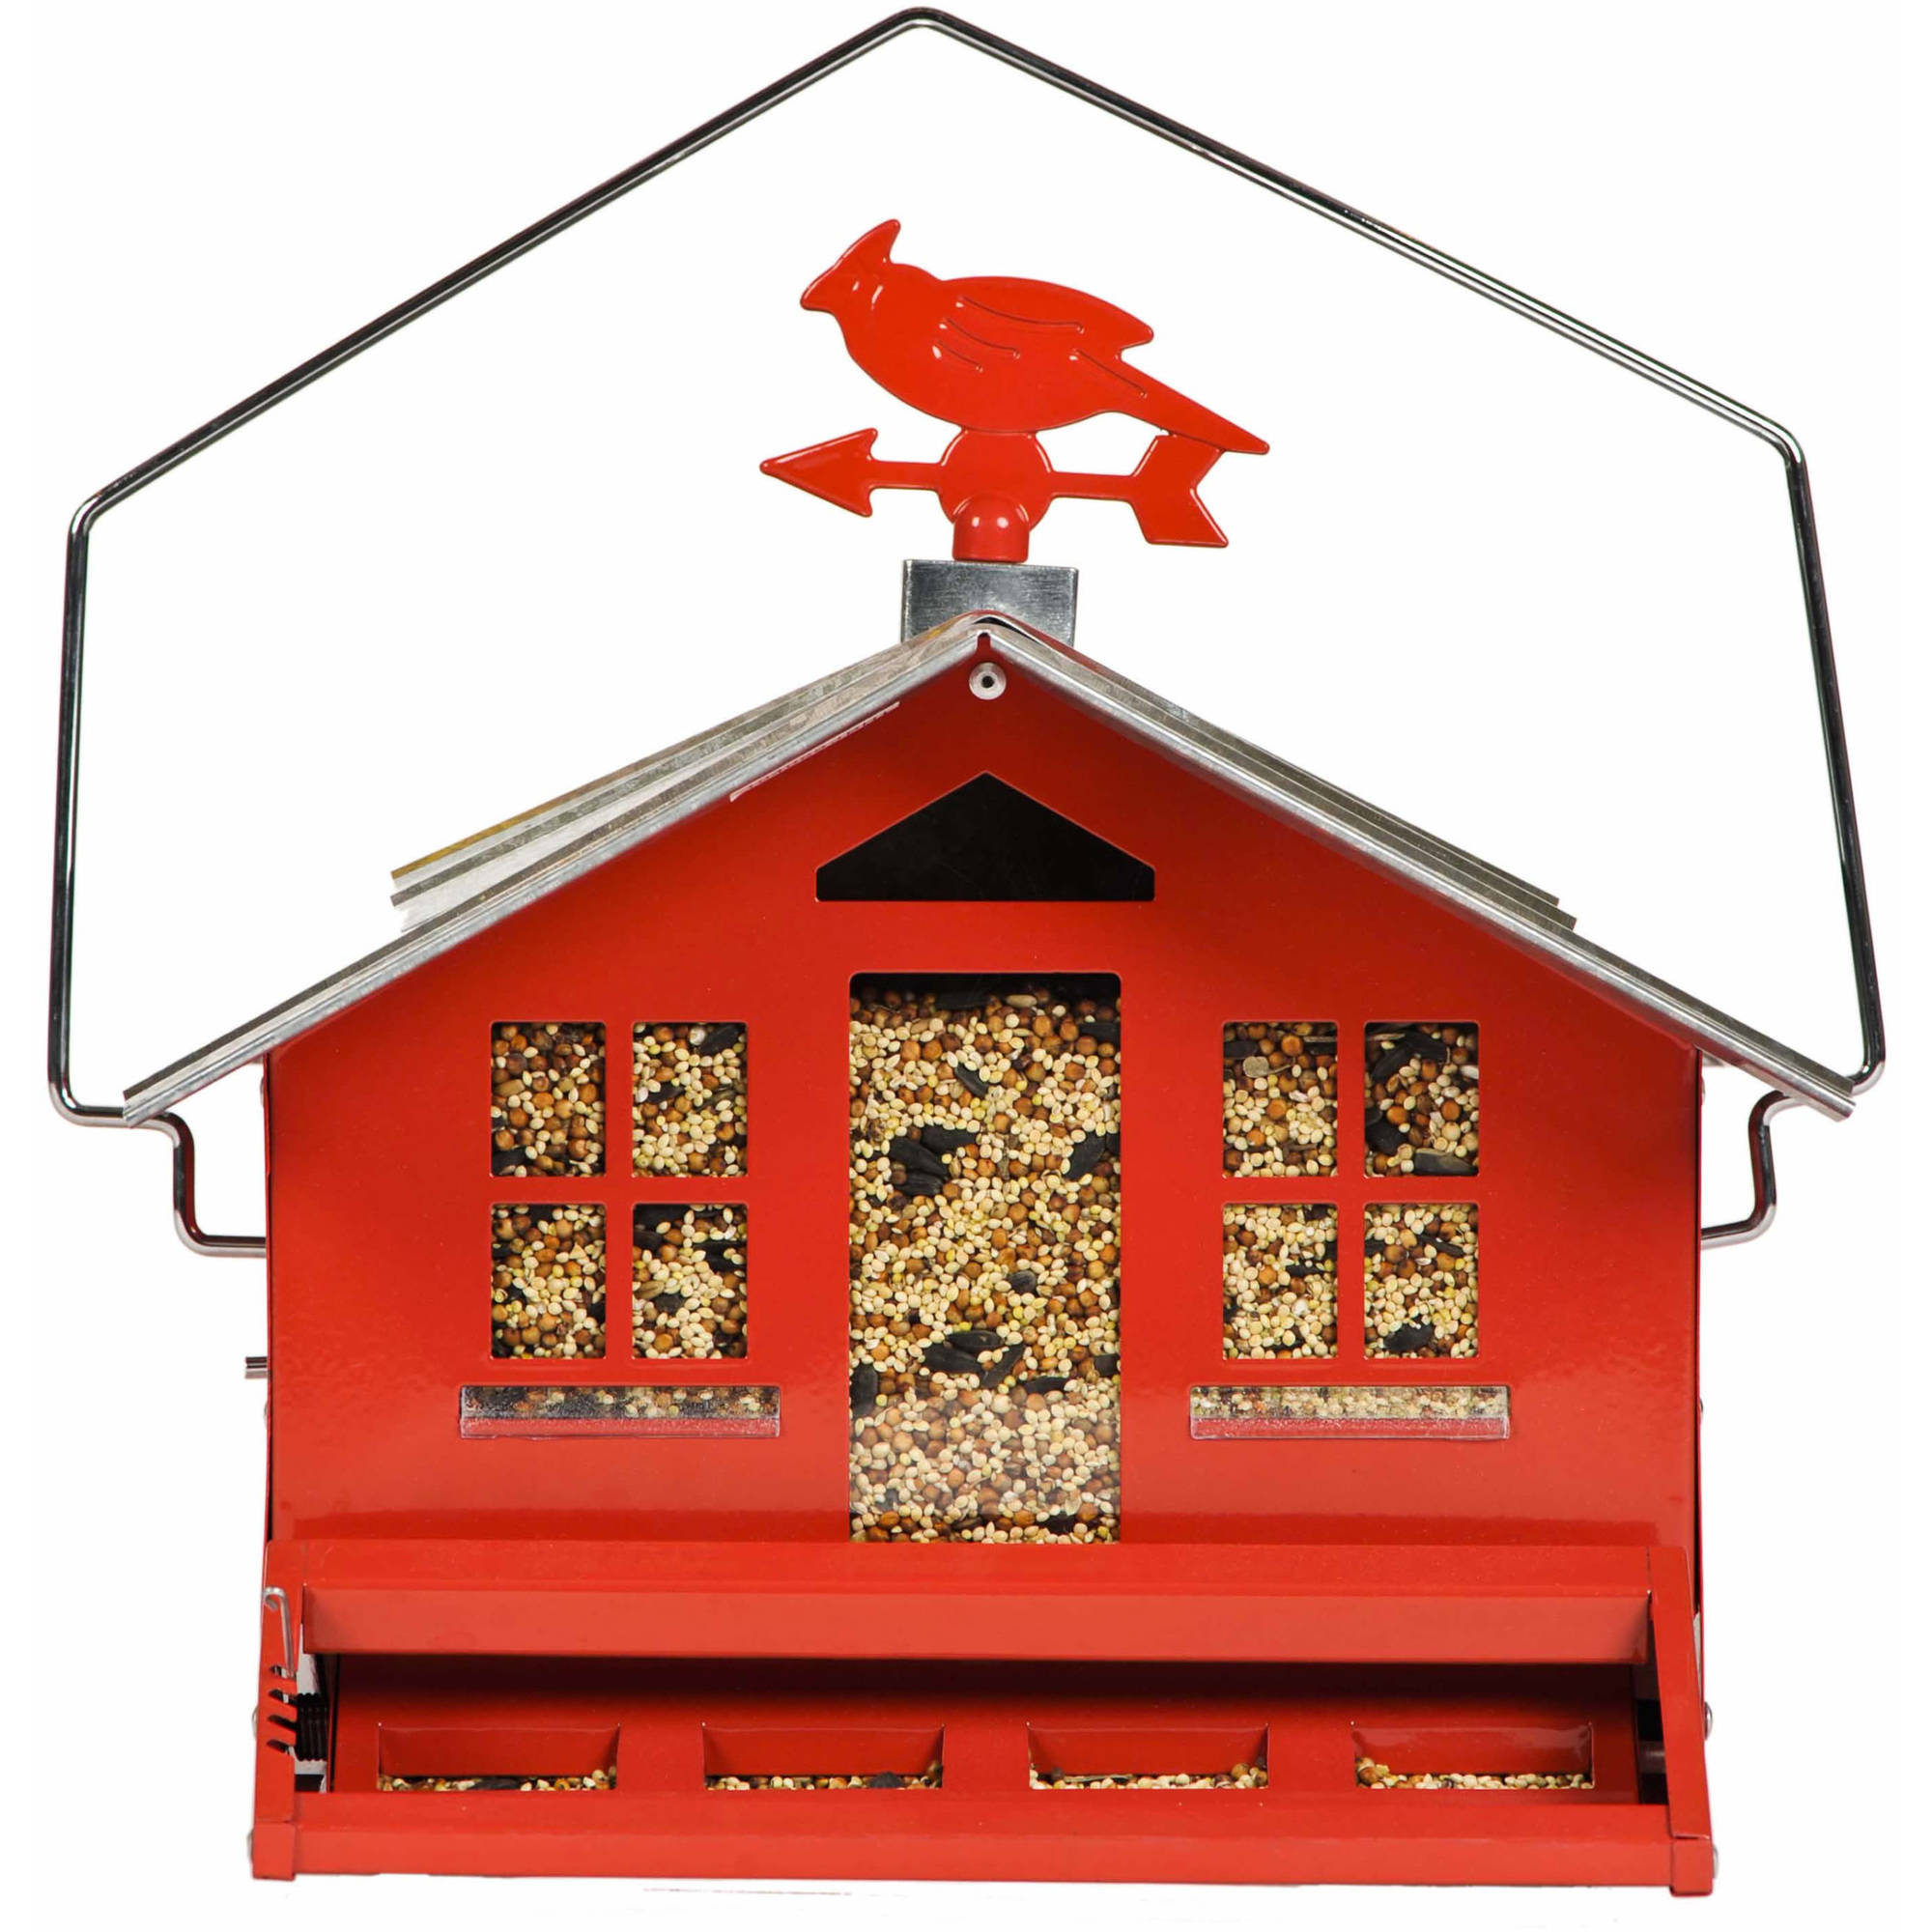 Perky-Pet 338 Squirrel-Be-Gone II Country Style Wild Birdfeeder by Perky-Pet